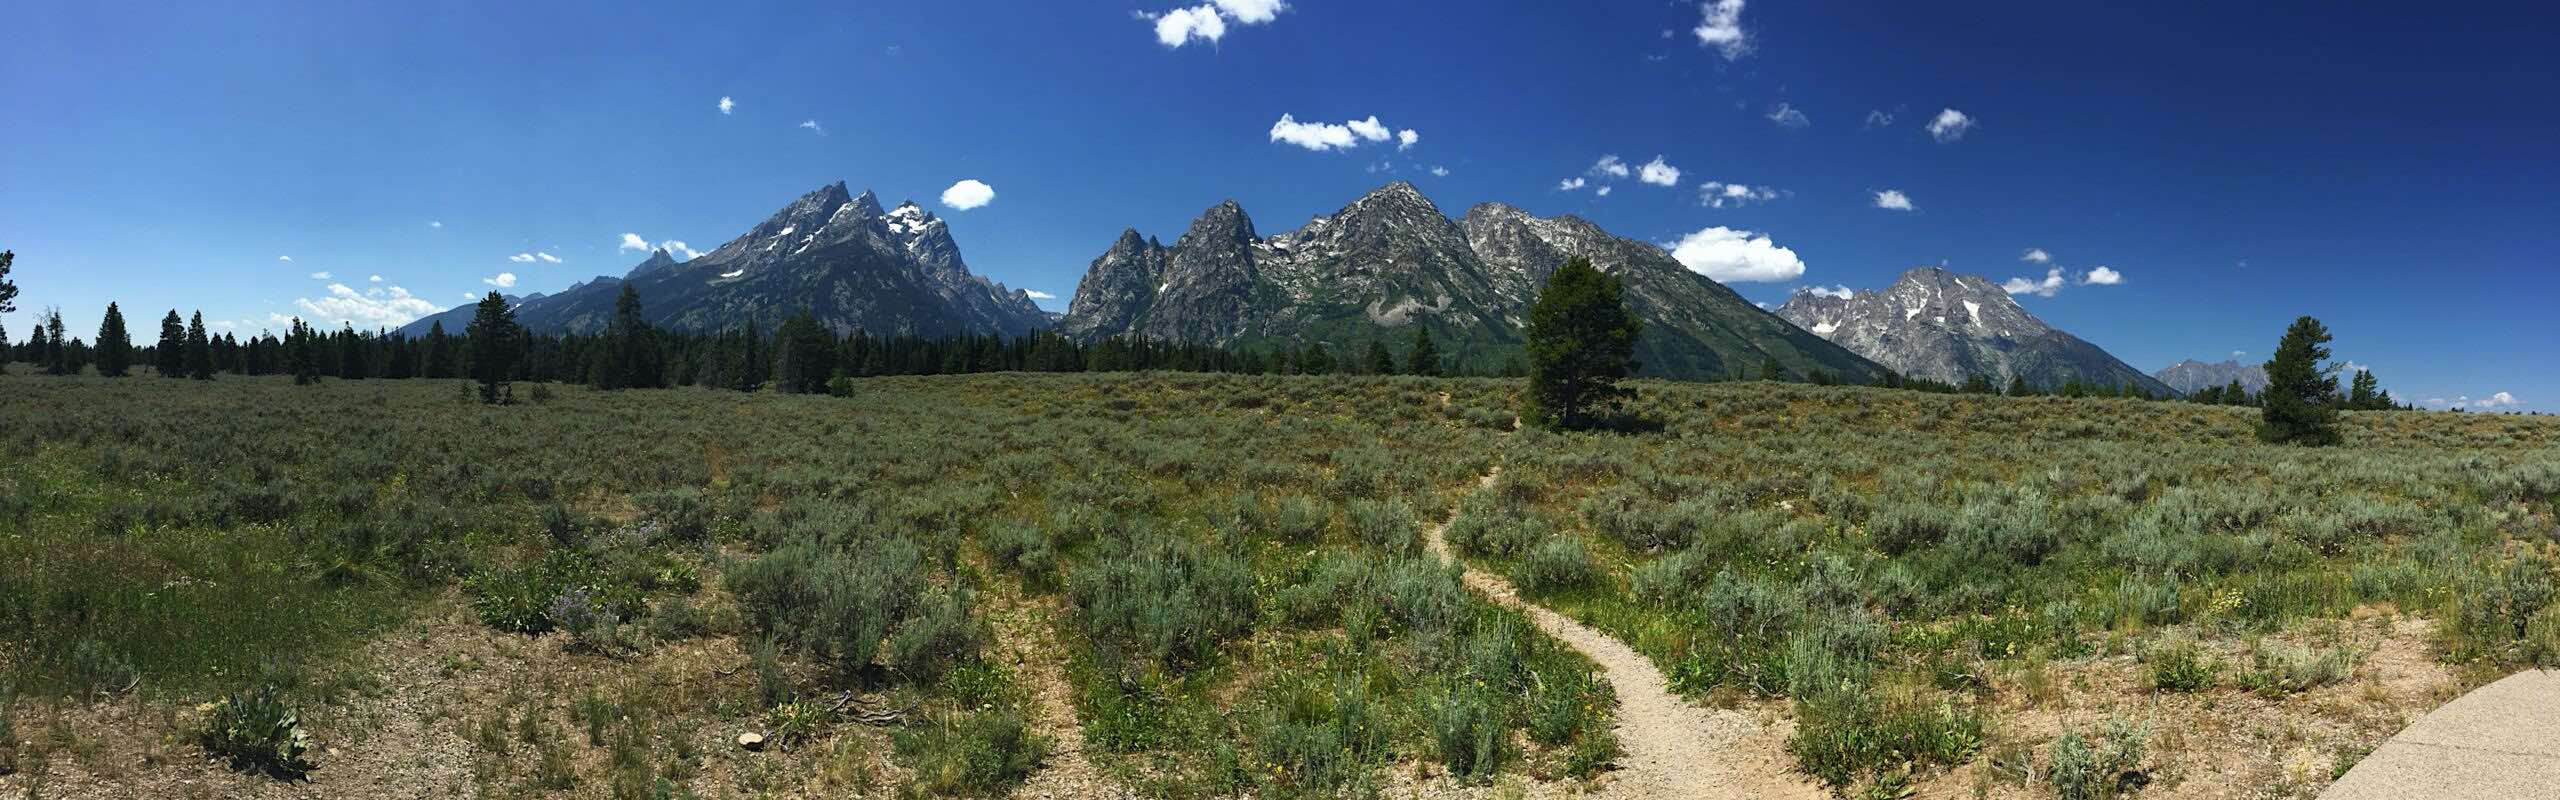 The Grand Tetons in Wyoming from our full-time RV lifestyle